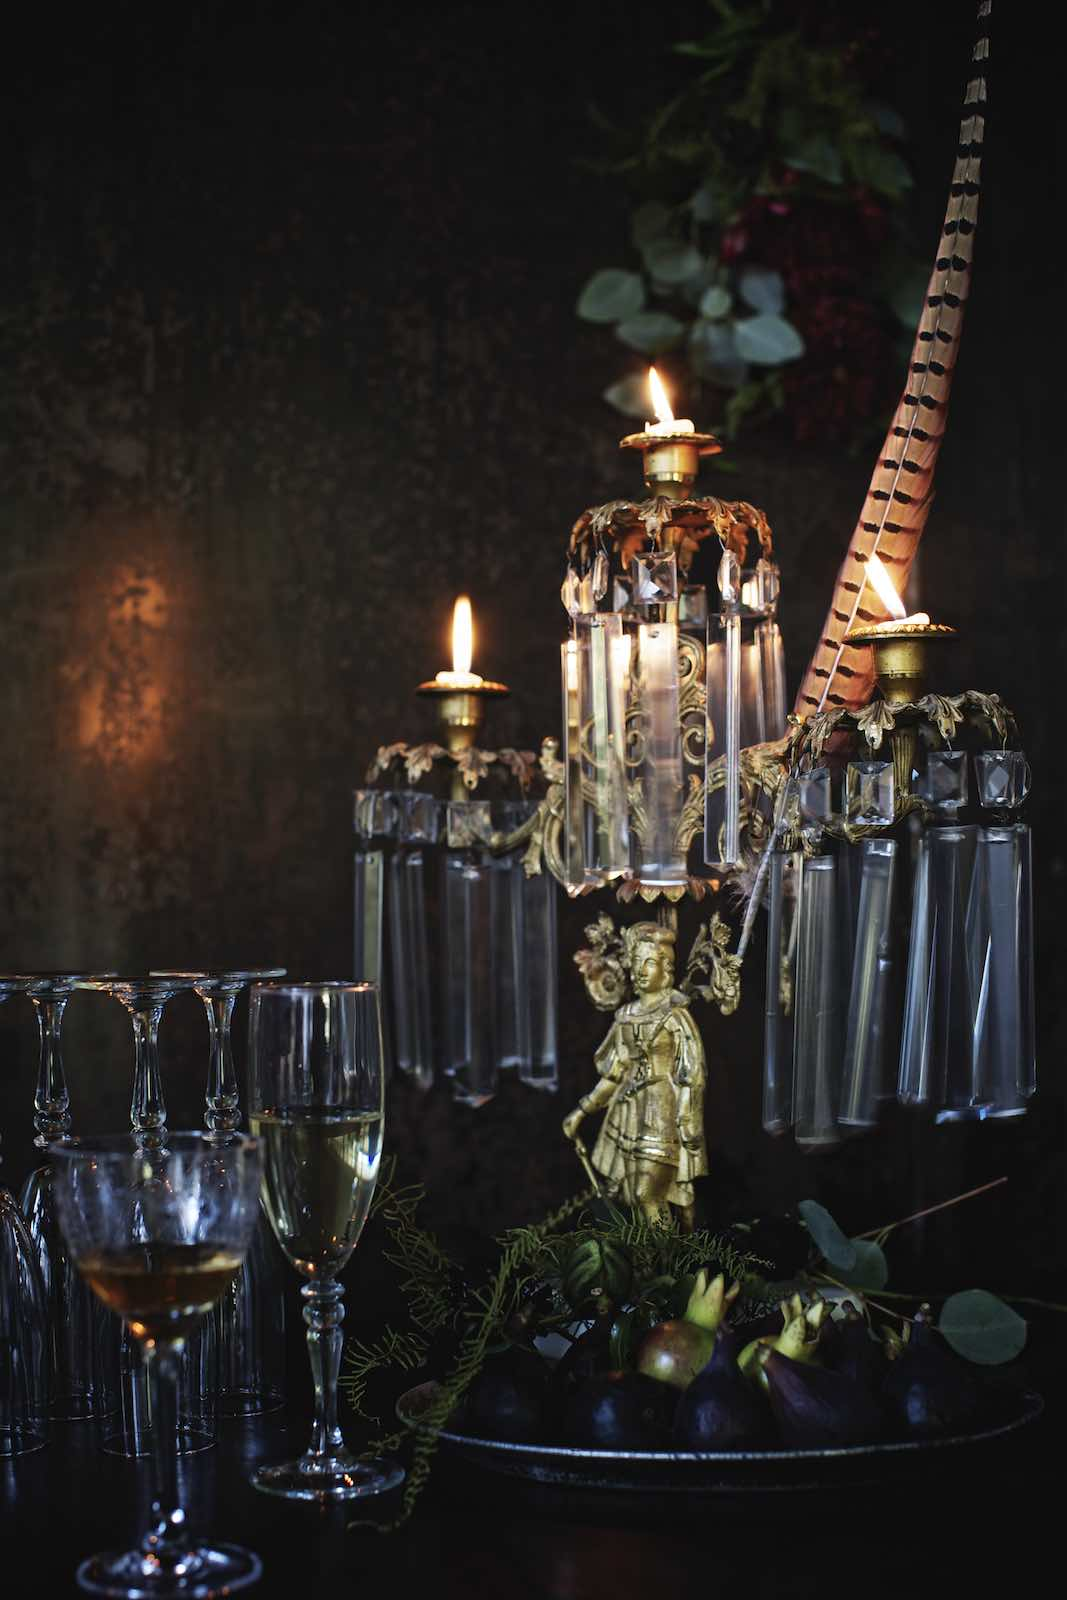 Jody Horton Photography - Regal candelabra illuminating crystal beverage glasses.